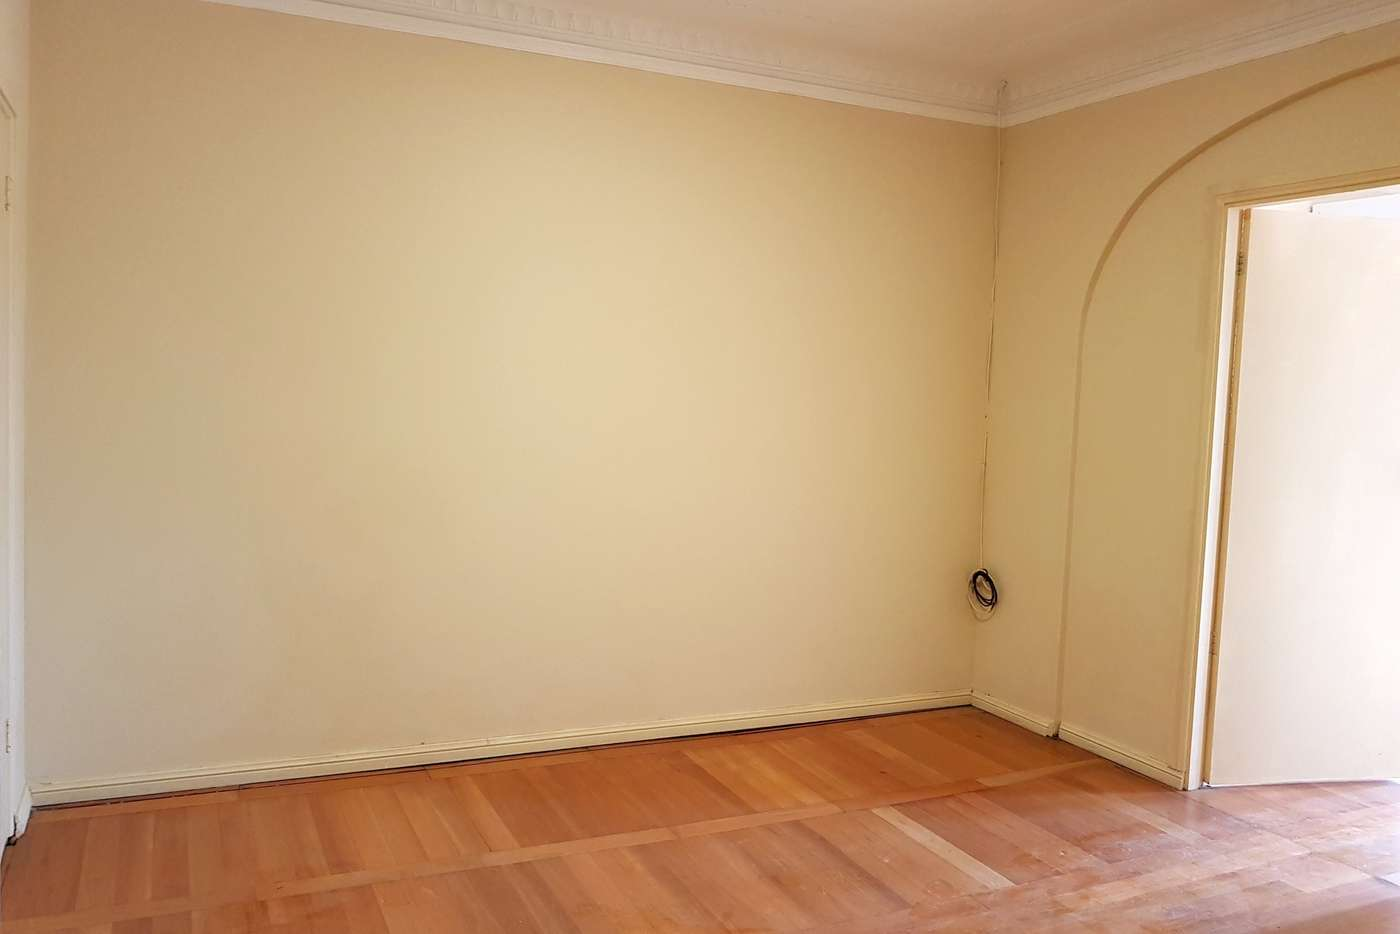 Seventh view of Homely house listing, 1 Beresford Avenue, Beverly Hills NSW 2209